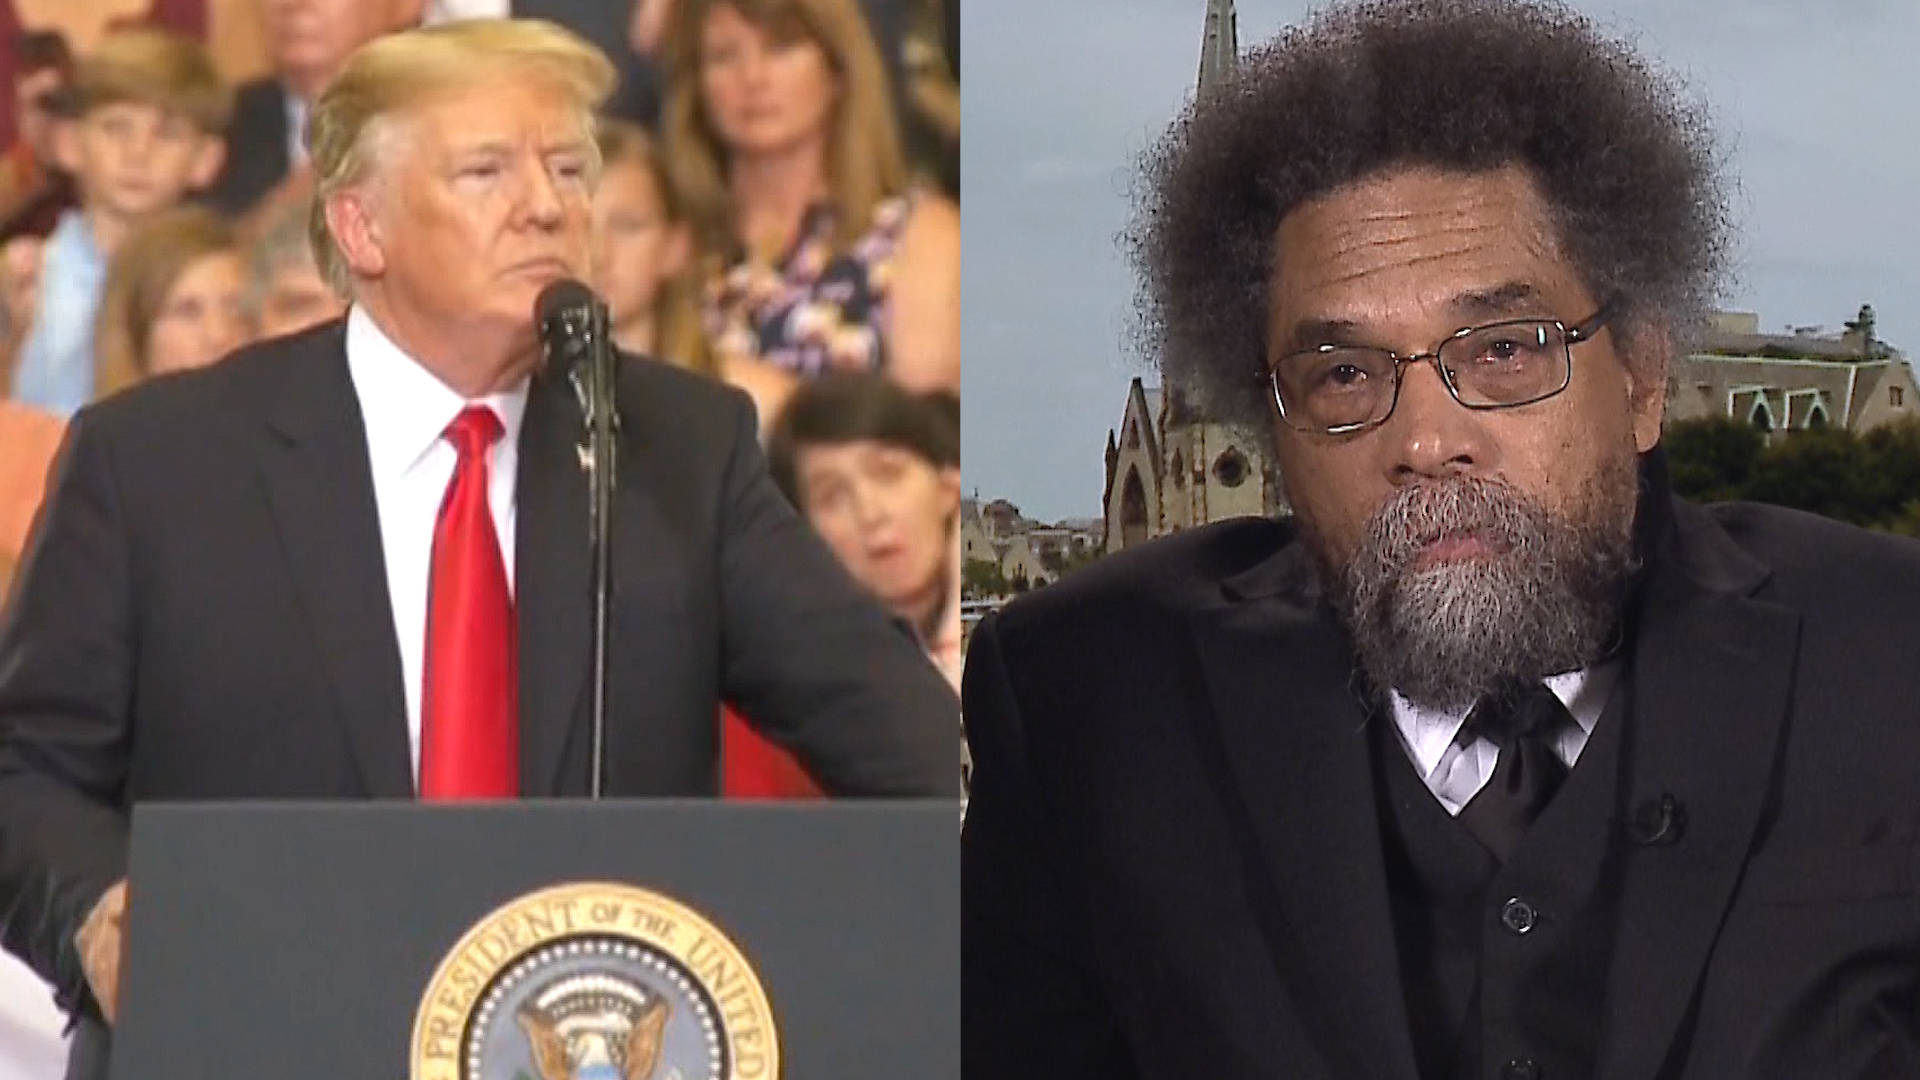 Cornel West: Corporate Media's Superficial Coverage Helped Create ...